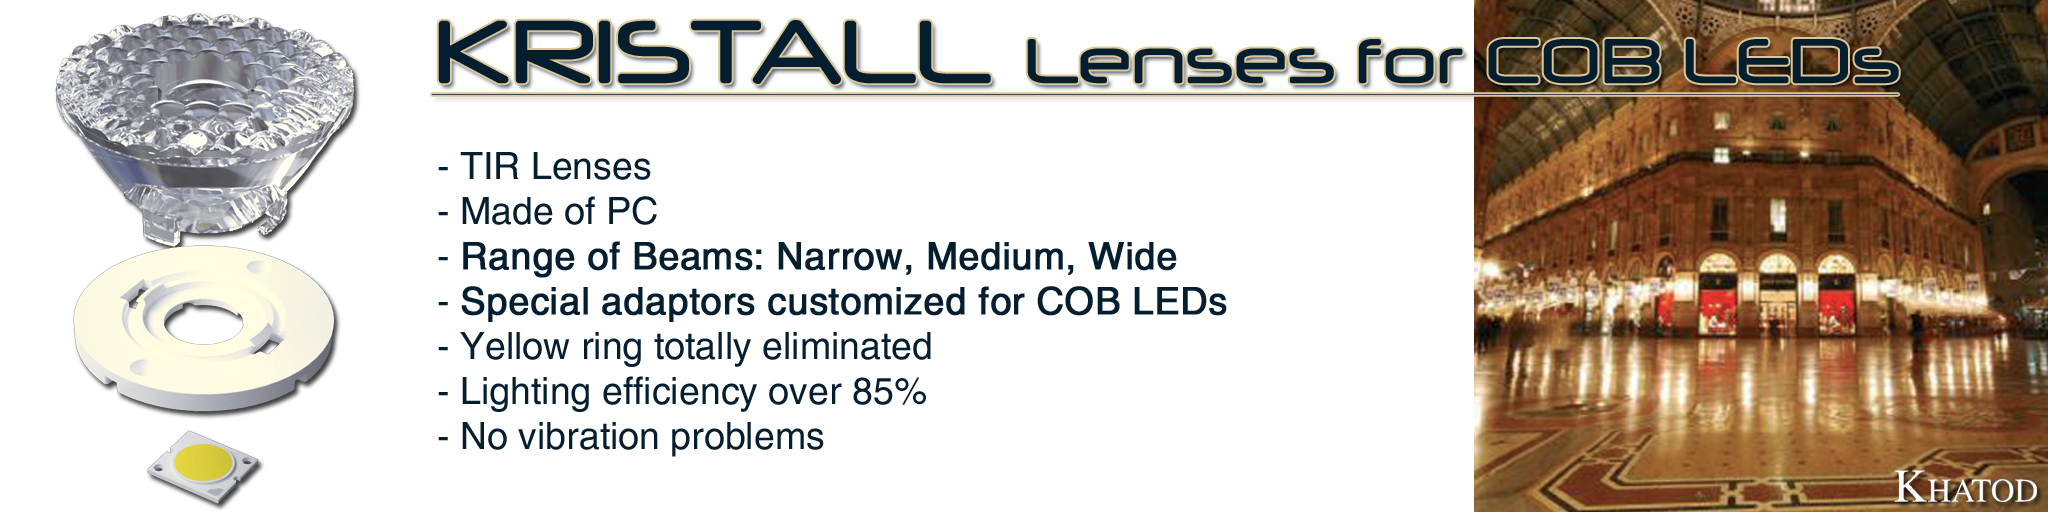 Kristall Lenses for COB LEDs